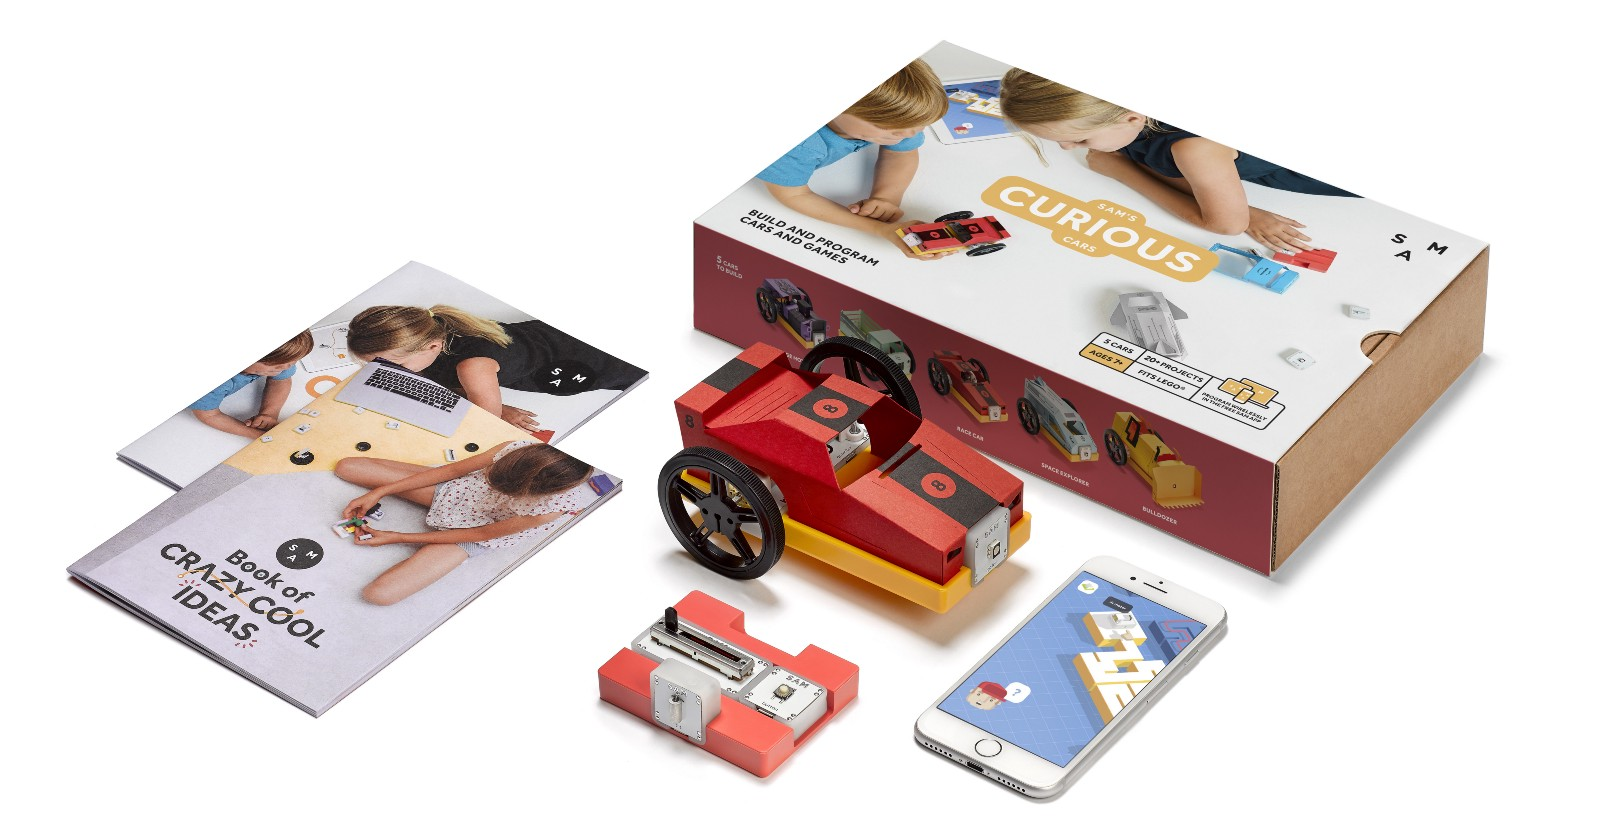 sam labs connected toy curious cars kit 199 - Christmas Ideas For 11 Year Old Boy